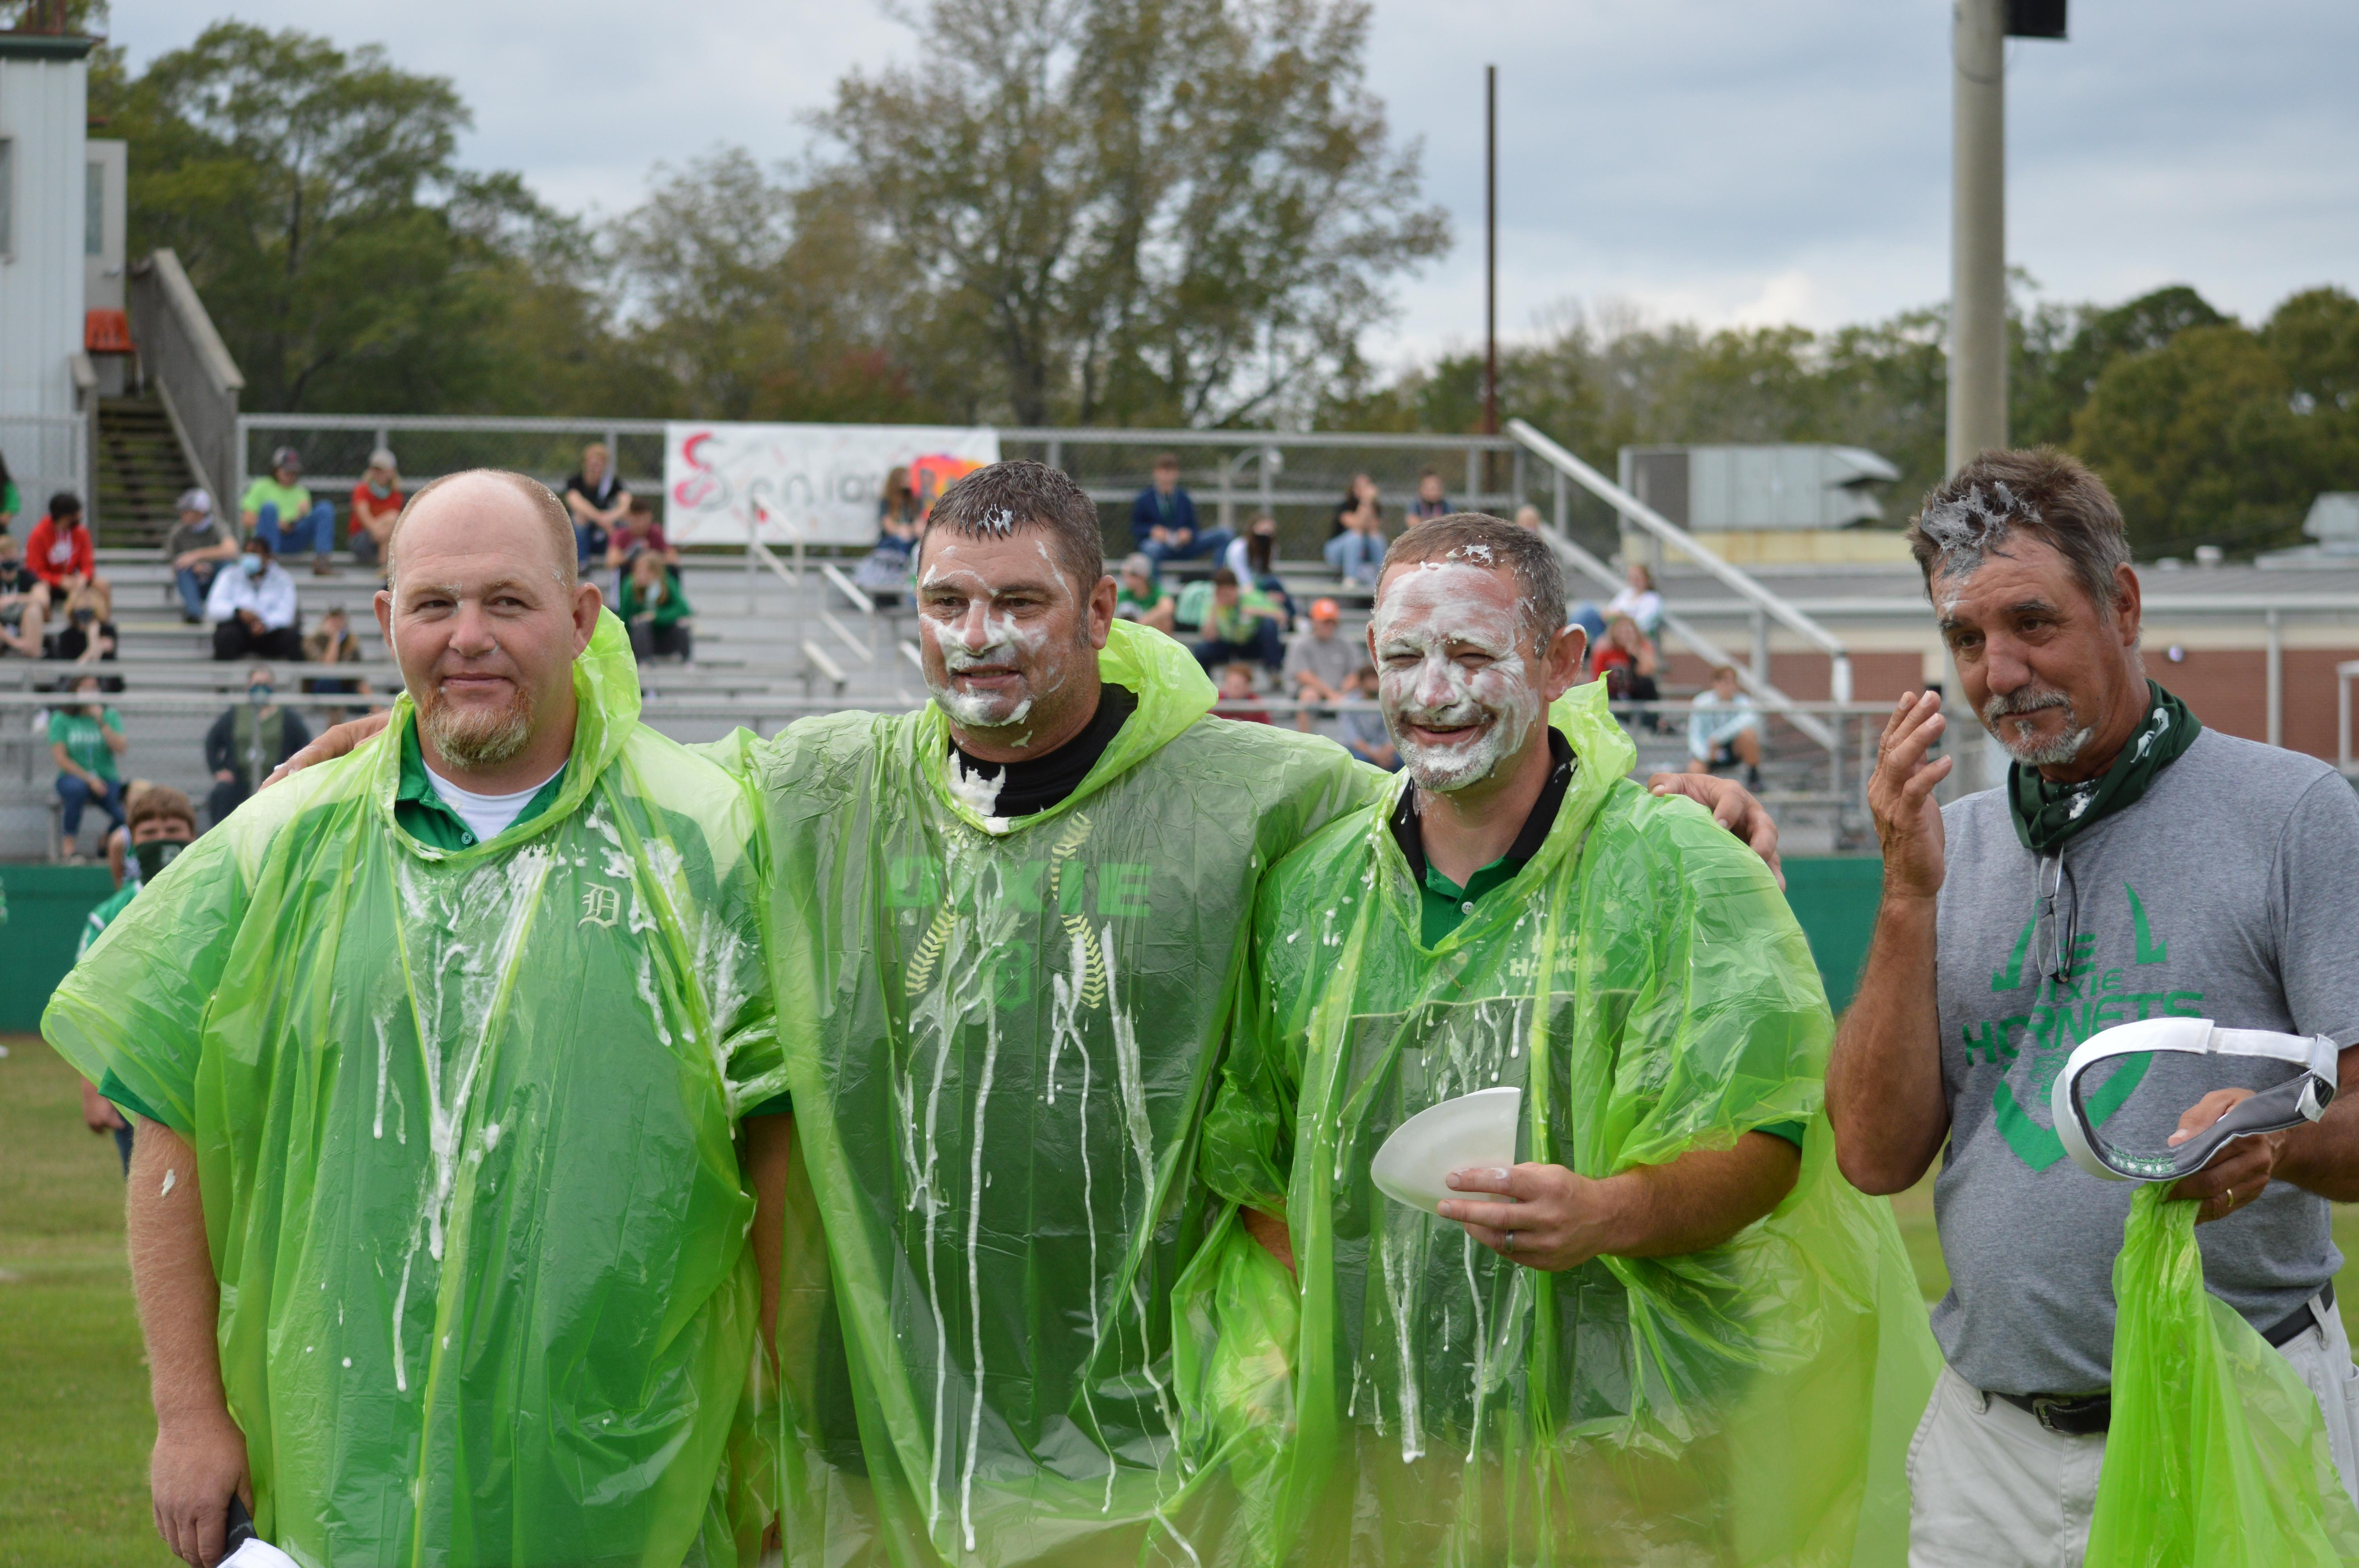 Coaches pose after having pie thrown in their faces.